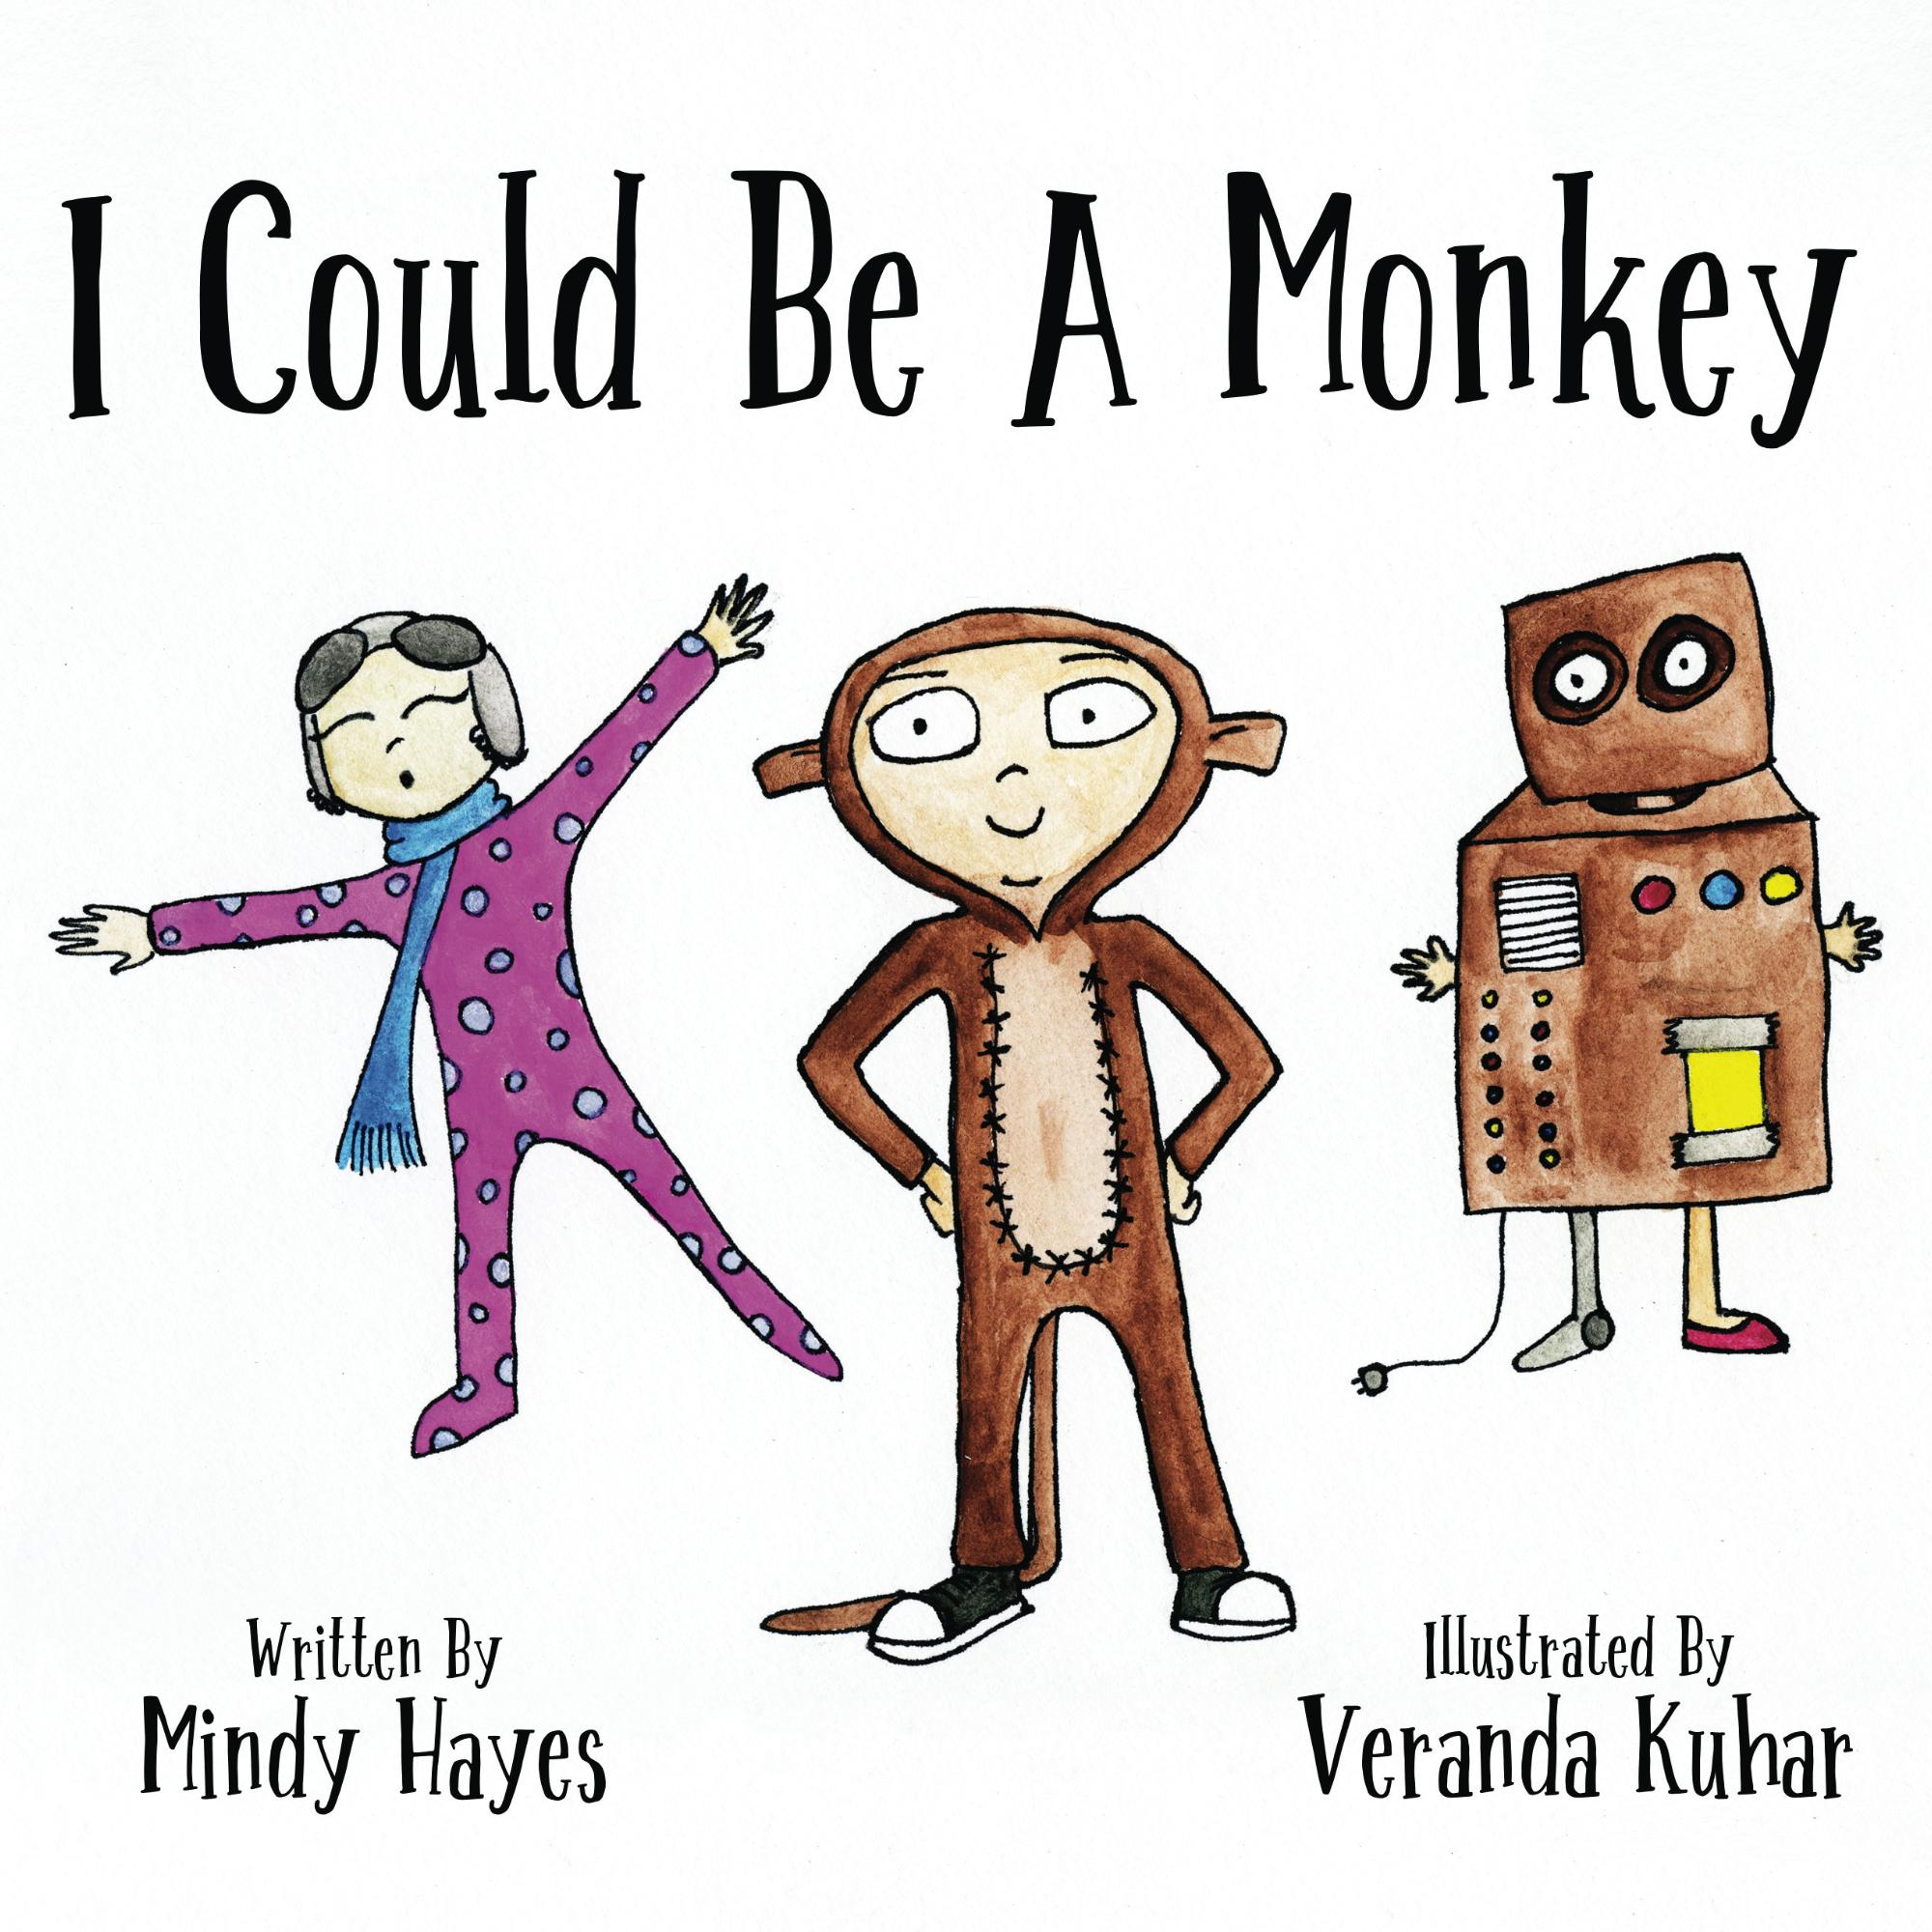 I_Could_Be_A_Monkey_Cover_for_Kindle.jpg